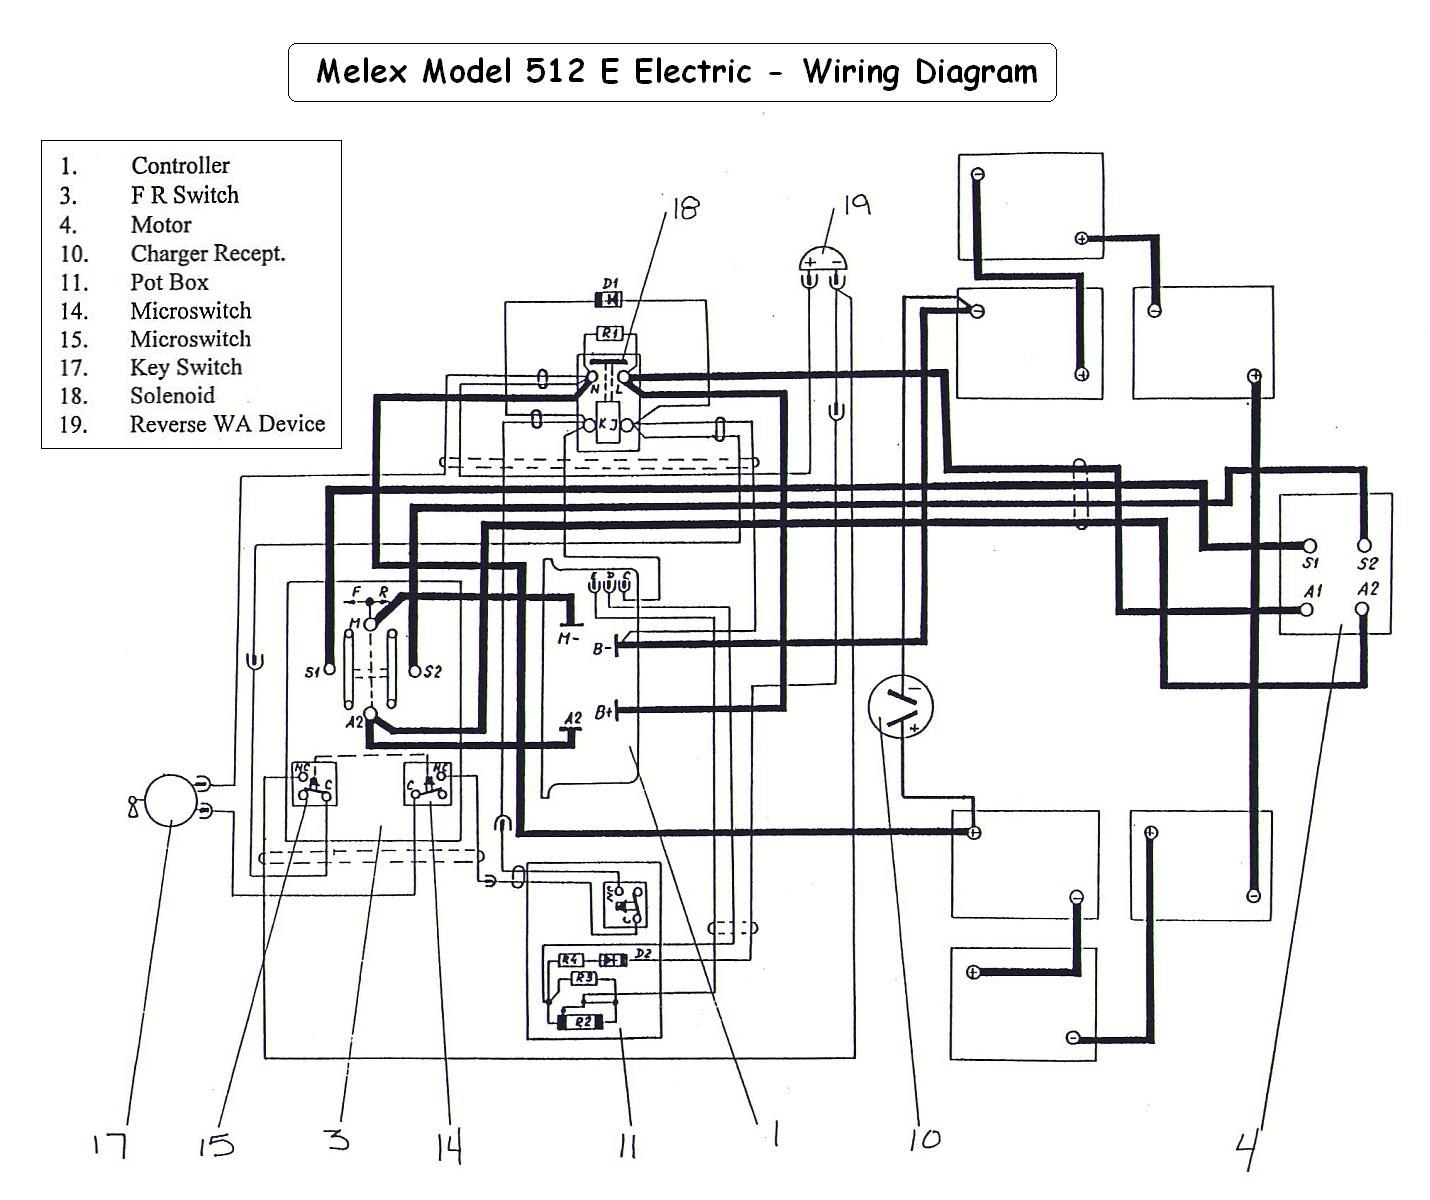 Melex512E_wiring_diagram vintagegolfcartparts com battery wiring diagram melex golf cart at bakdesigns.co